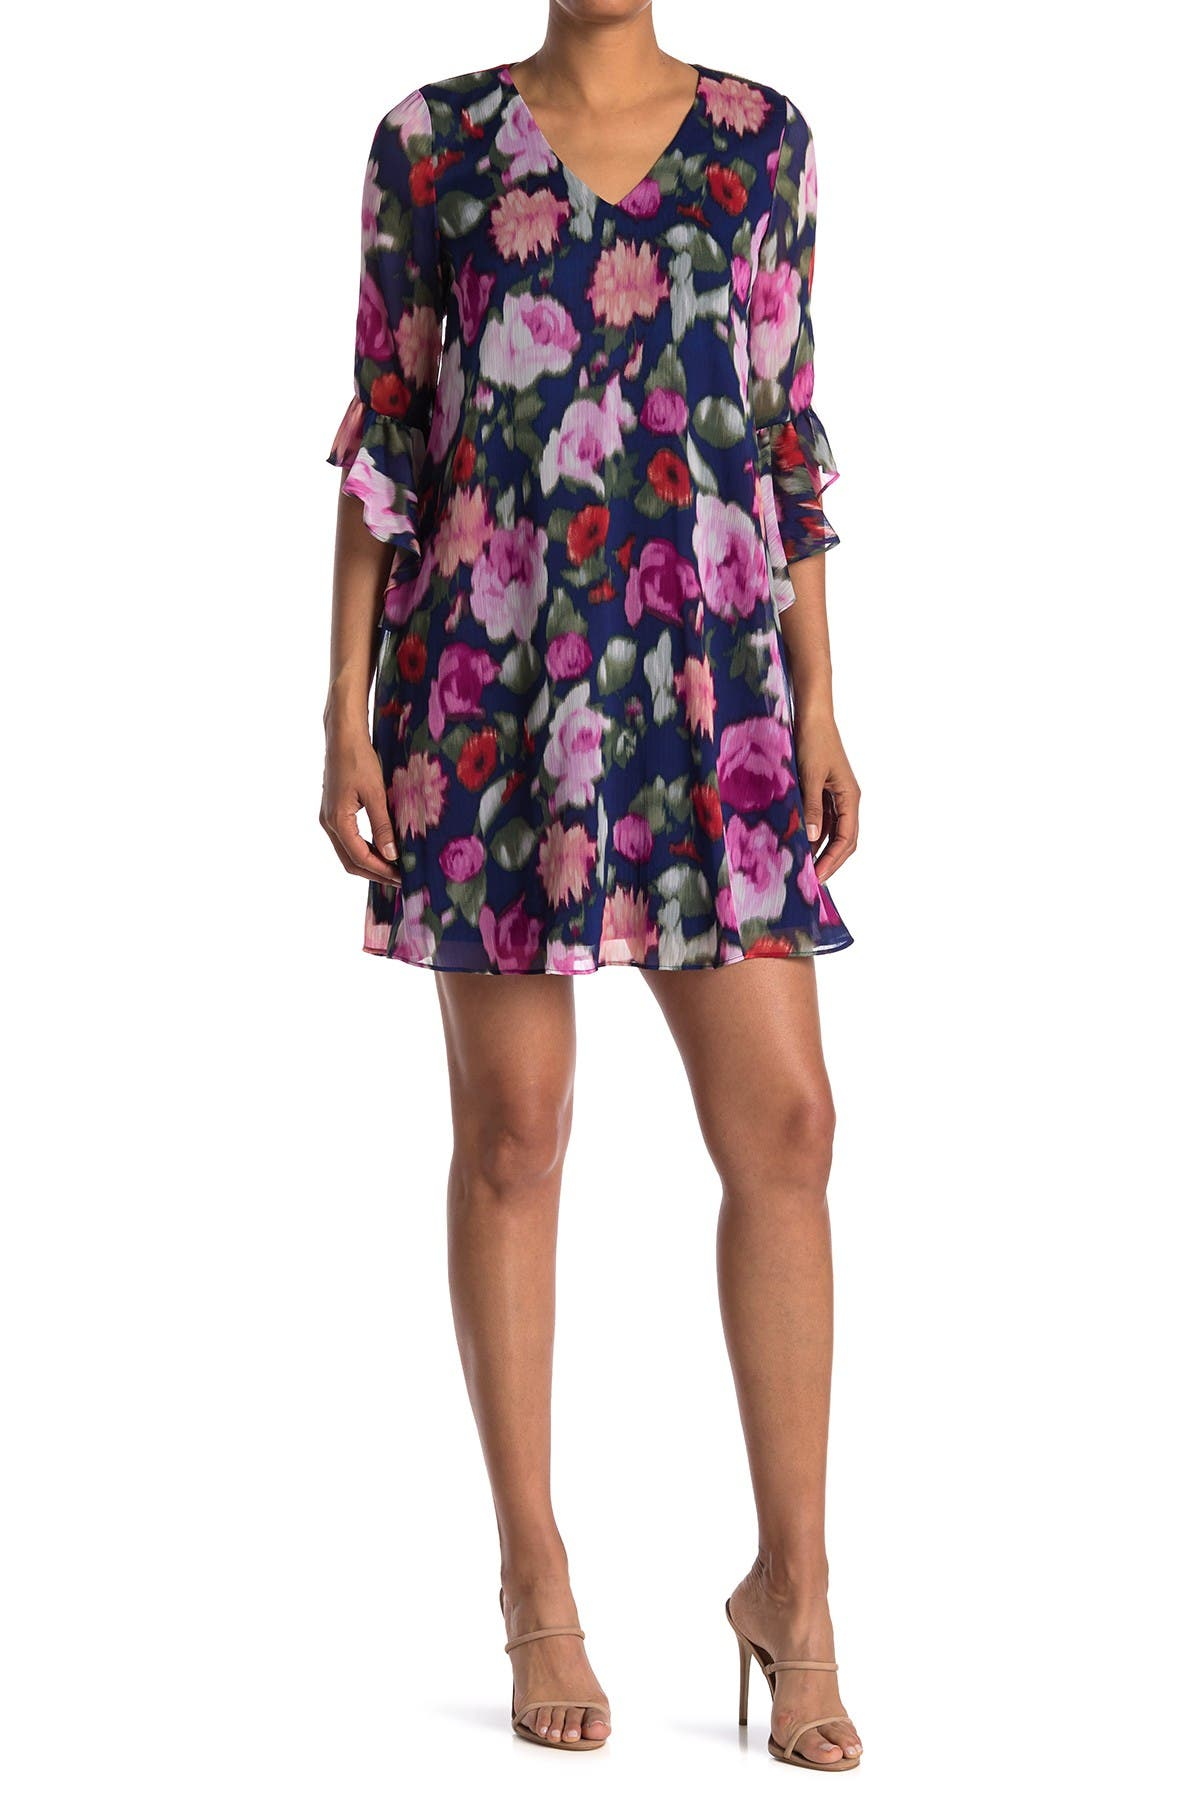 Image of Calvin Klein Ruffle Sleeve A-Line Floral Dress